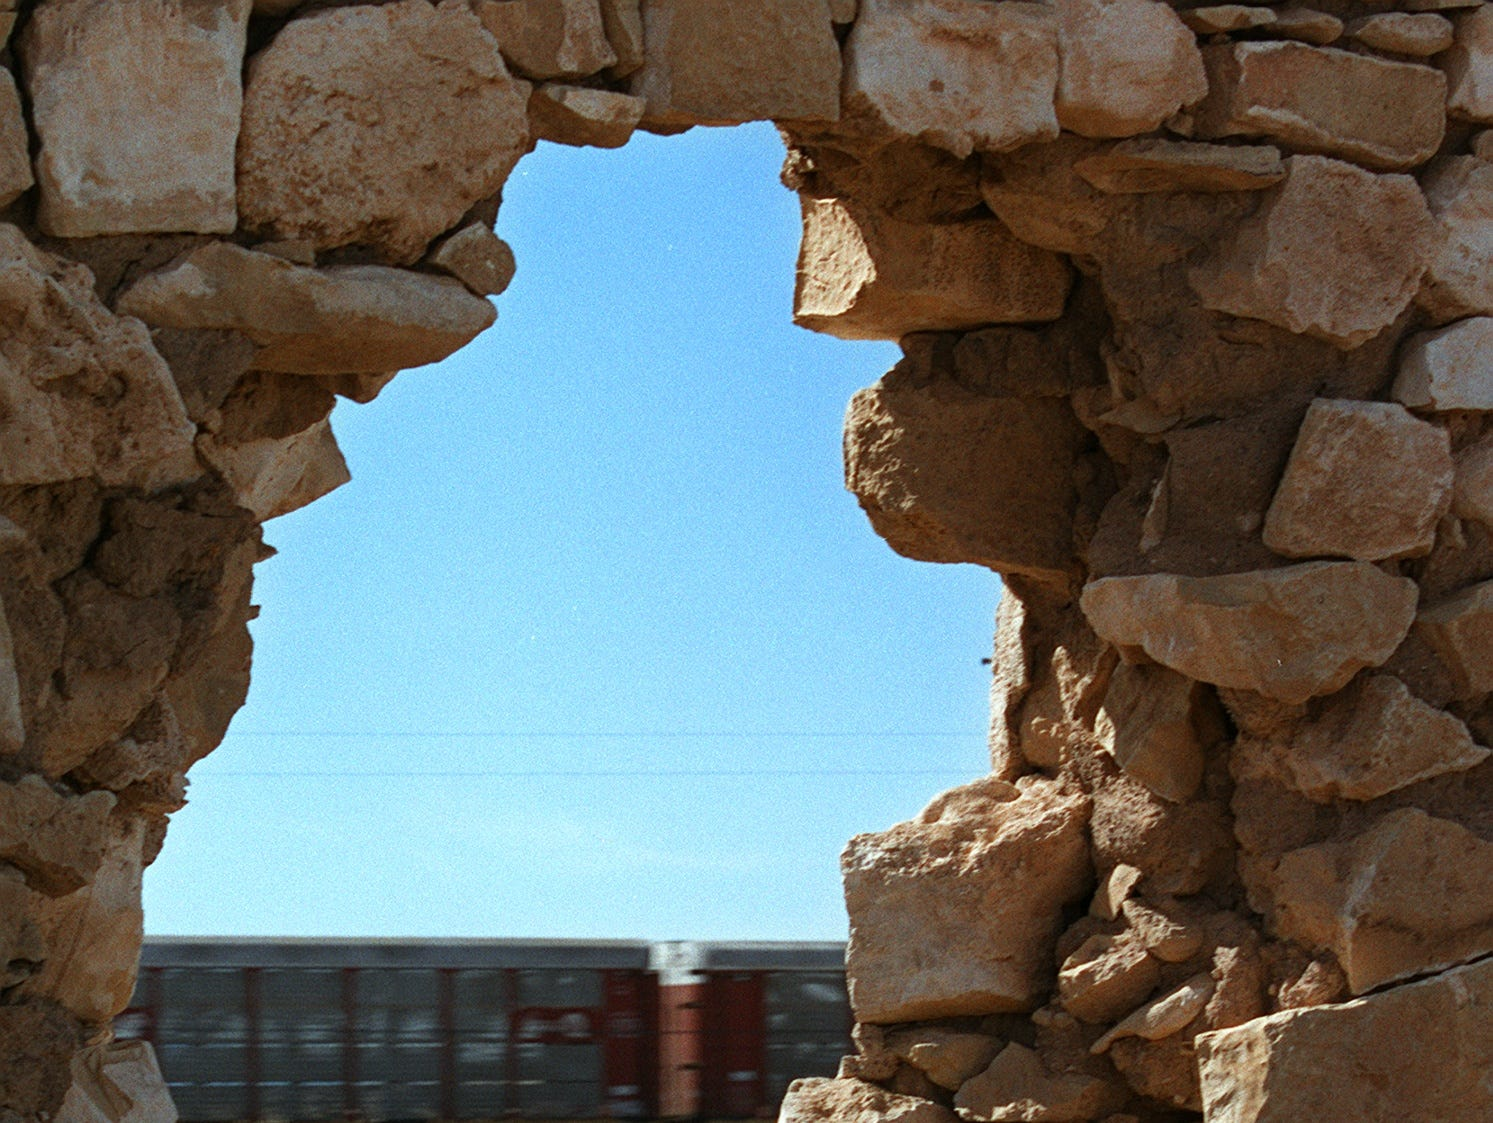 A freight train passes by the ruins of the trading post built on the site of the ghost town of Canyon Diablo.  The trading post was destroyed by a fire during the 1930s.